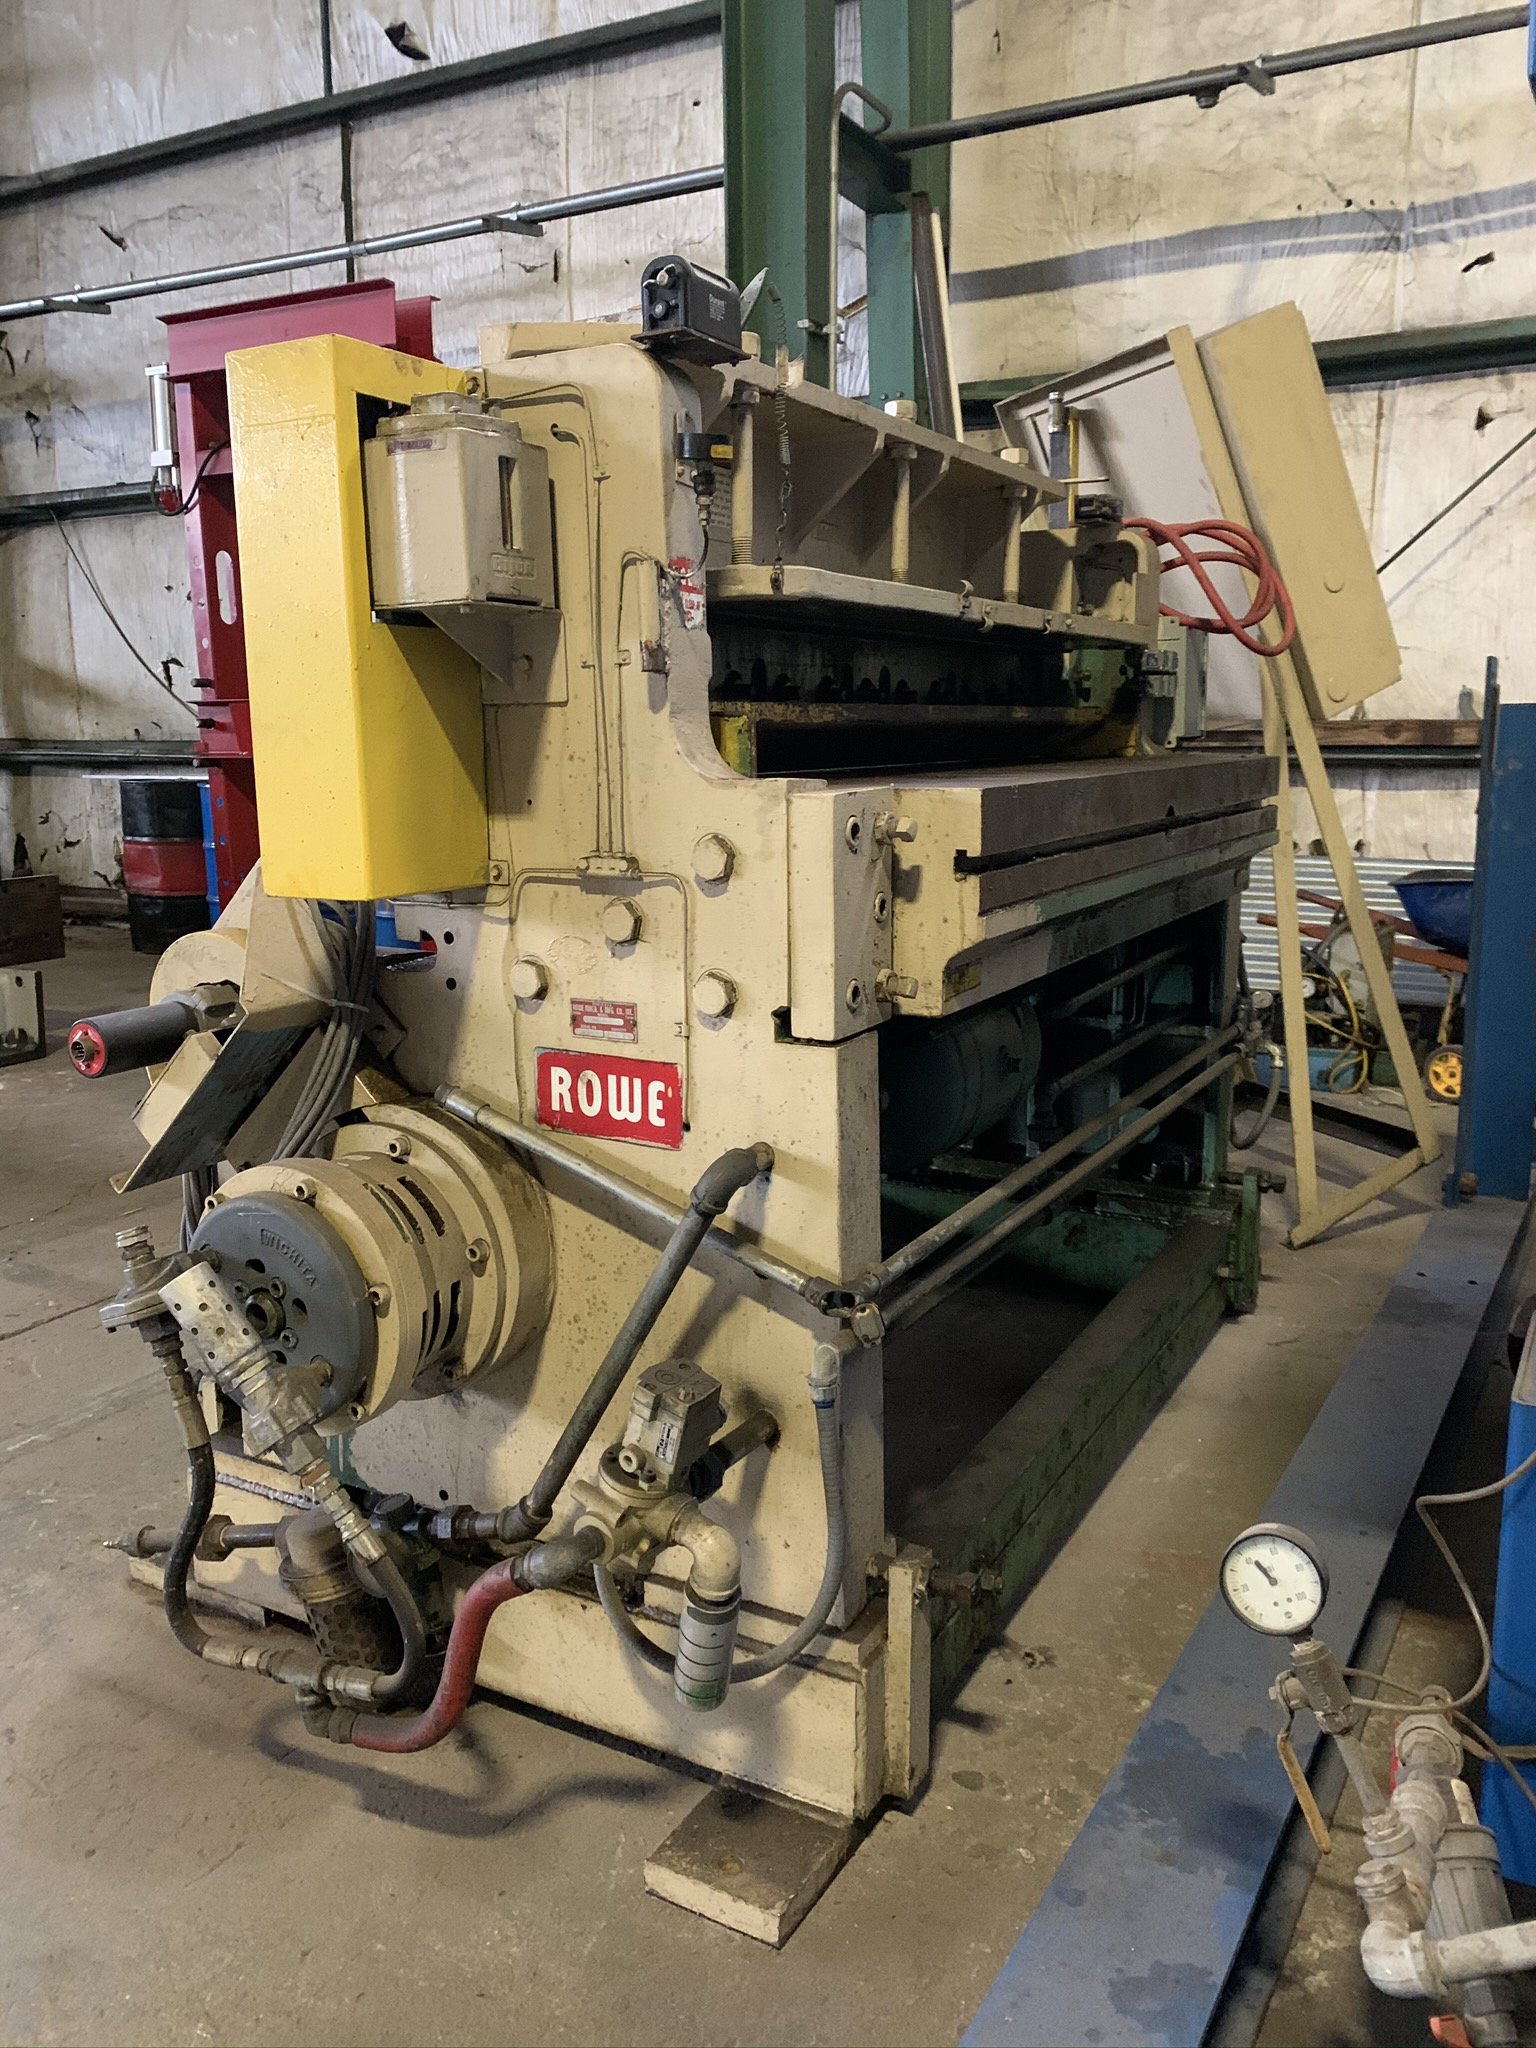 """WYSONG MODEL 1052 RKB LINE SHEAR; S/N P97-100, 52"""" WIDTH, AIR CLUTCH, BOW TIE BLADE, 15 HP 230/460 - Image 5 of 5"""